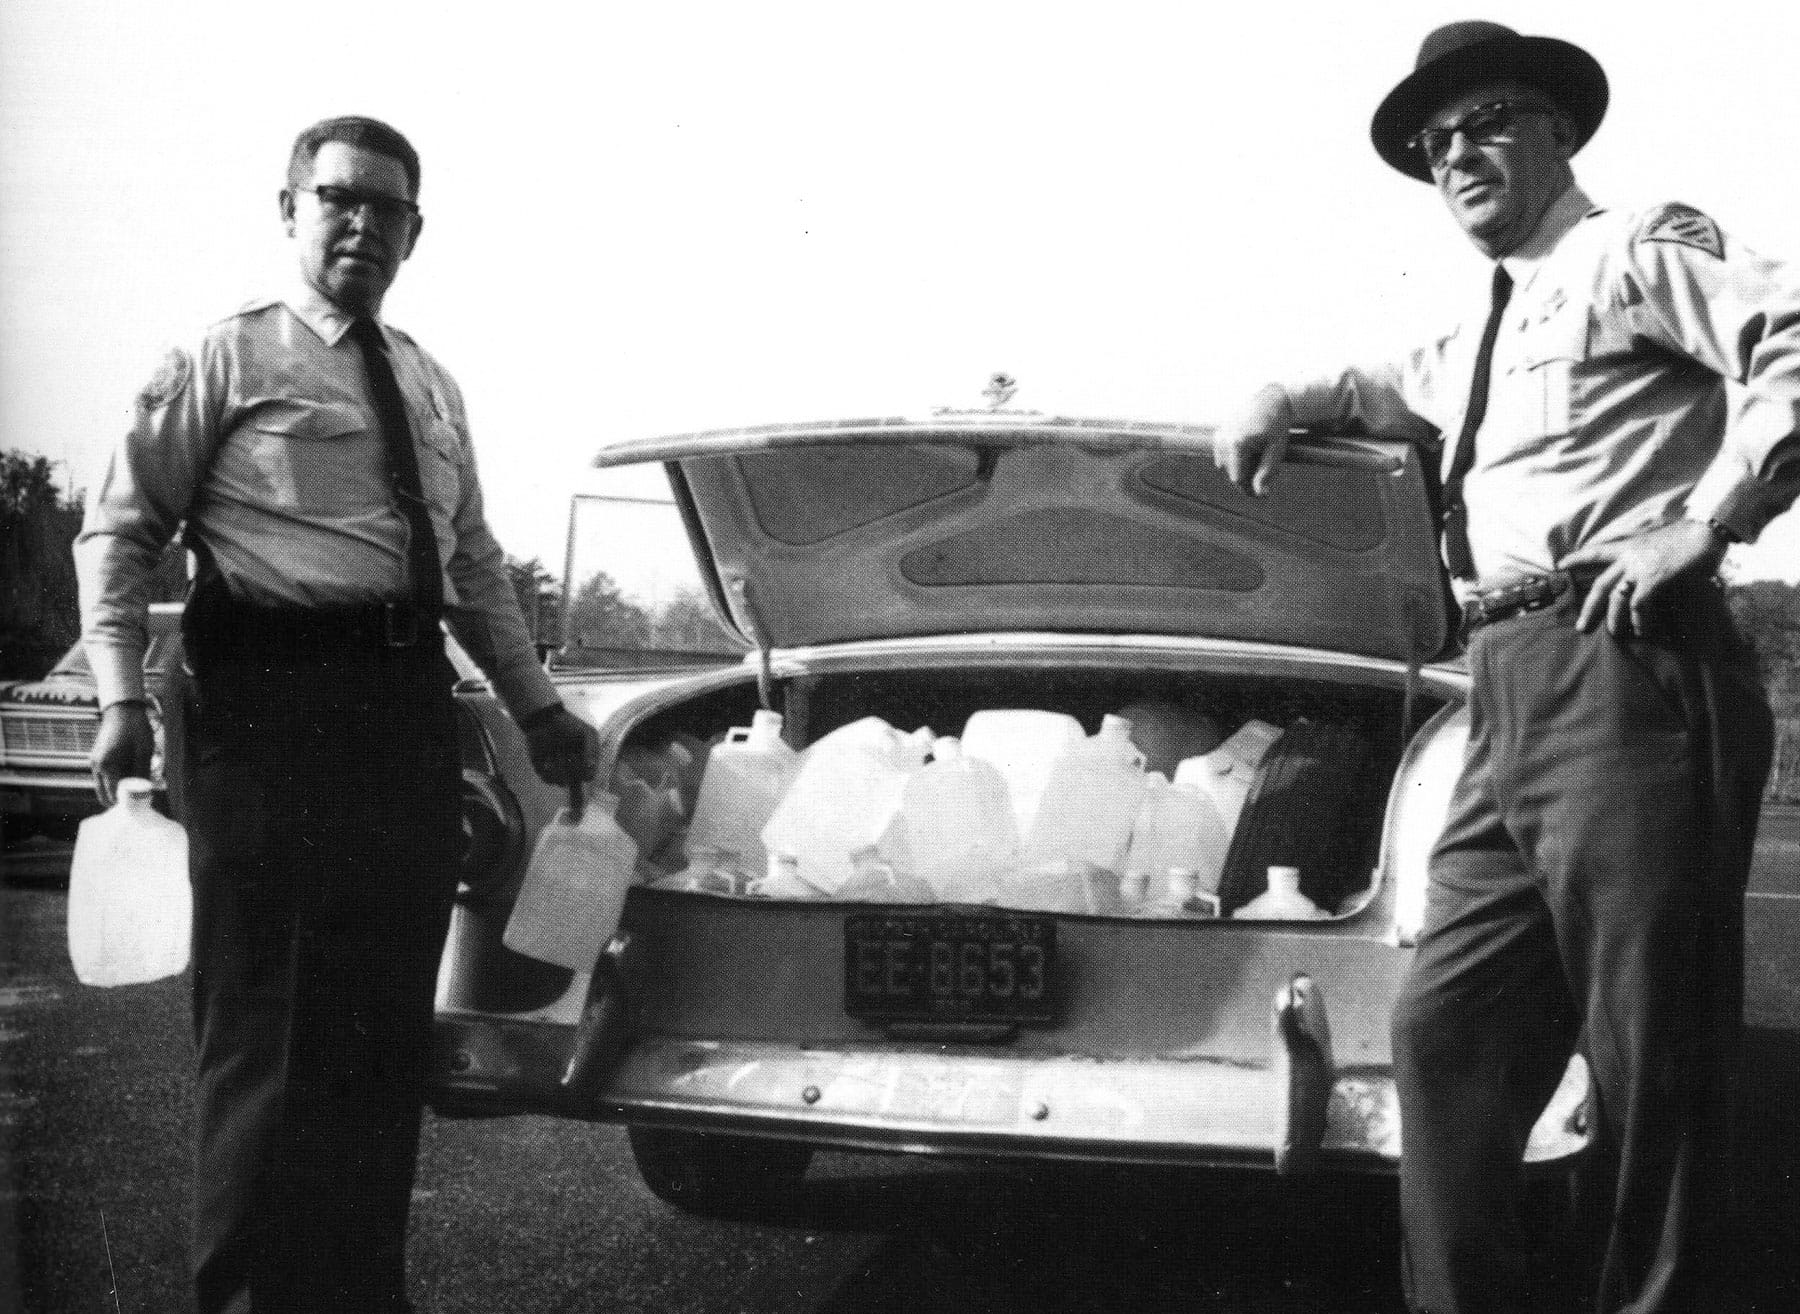 Moonshine Car - Terry Hall Collection